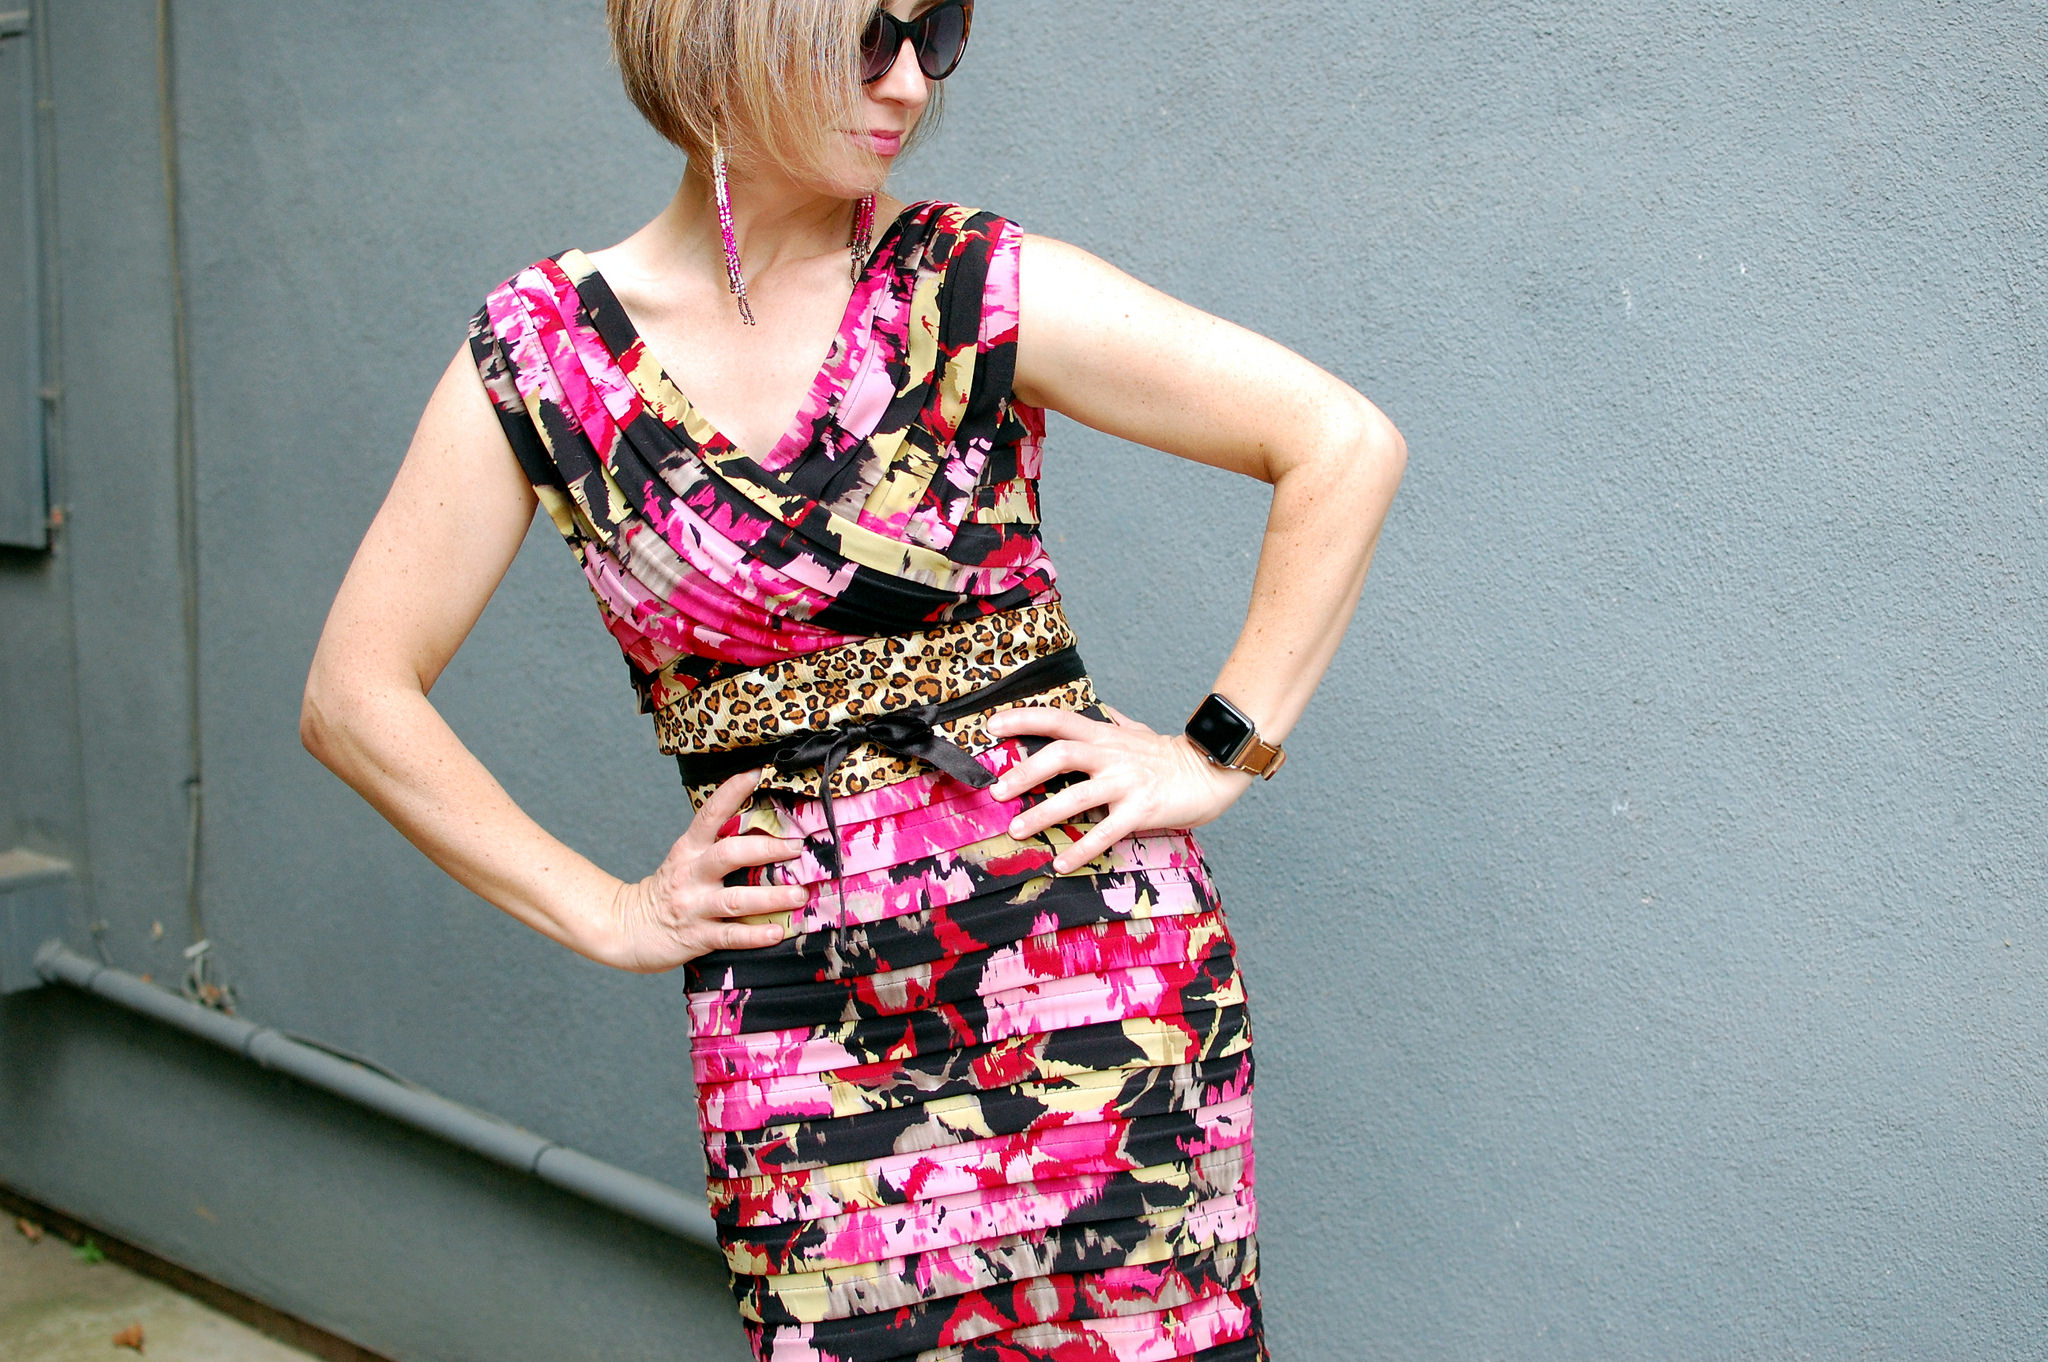 floral bandage dress leopard obi belt outfit ootd whatiwore2day